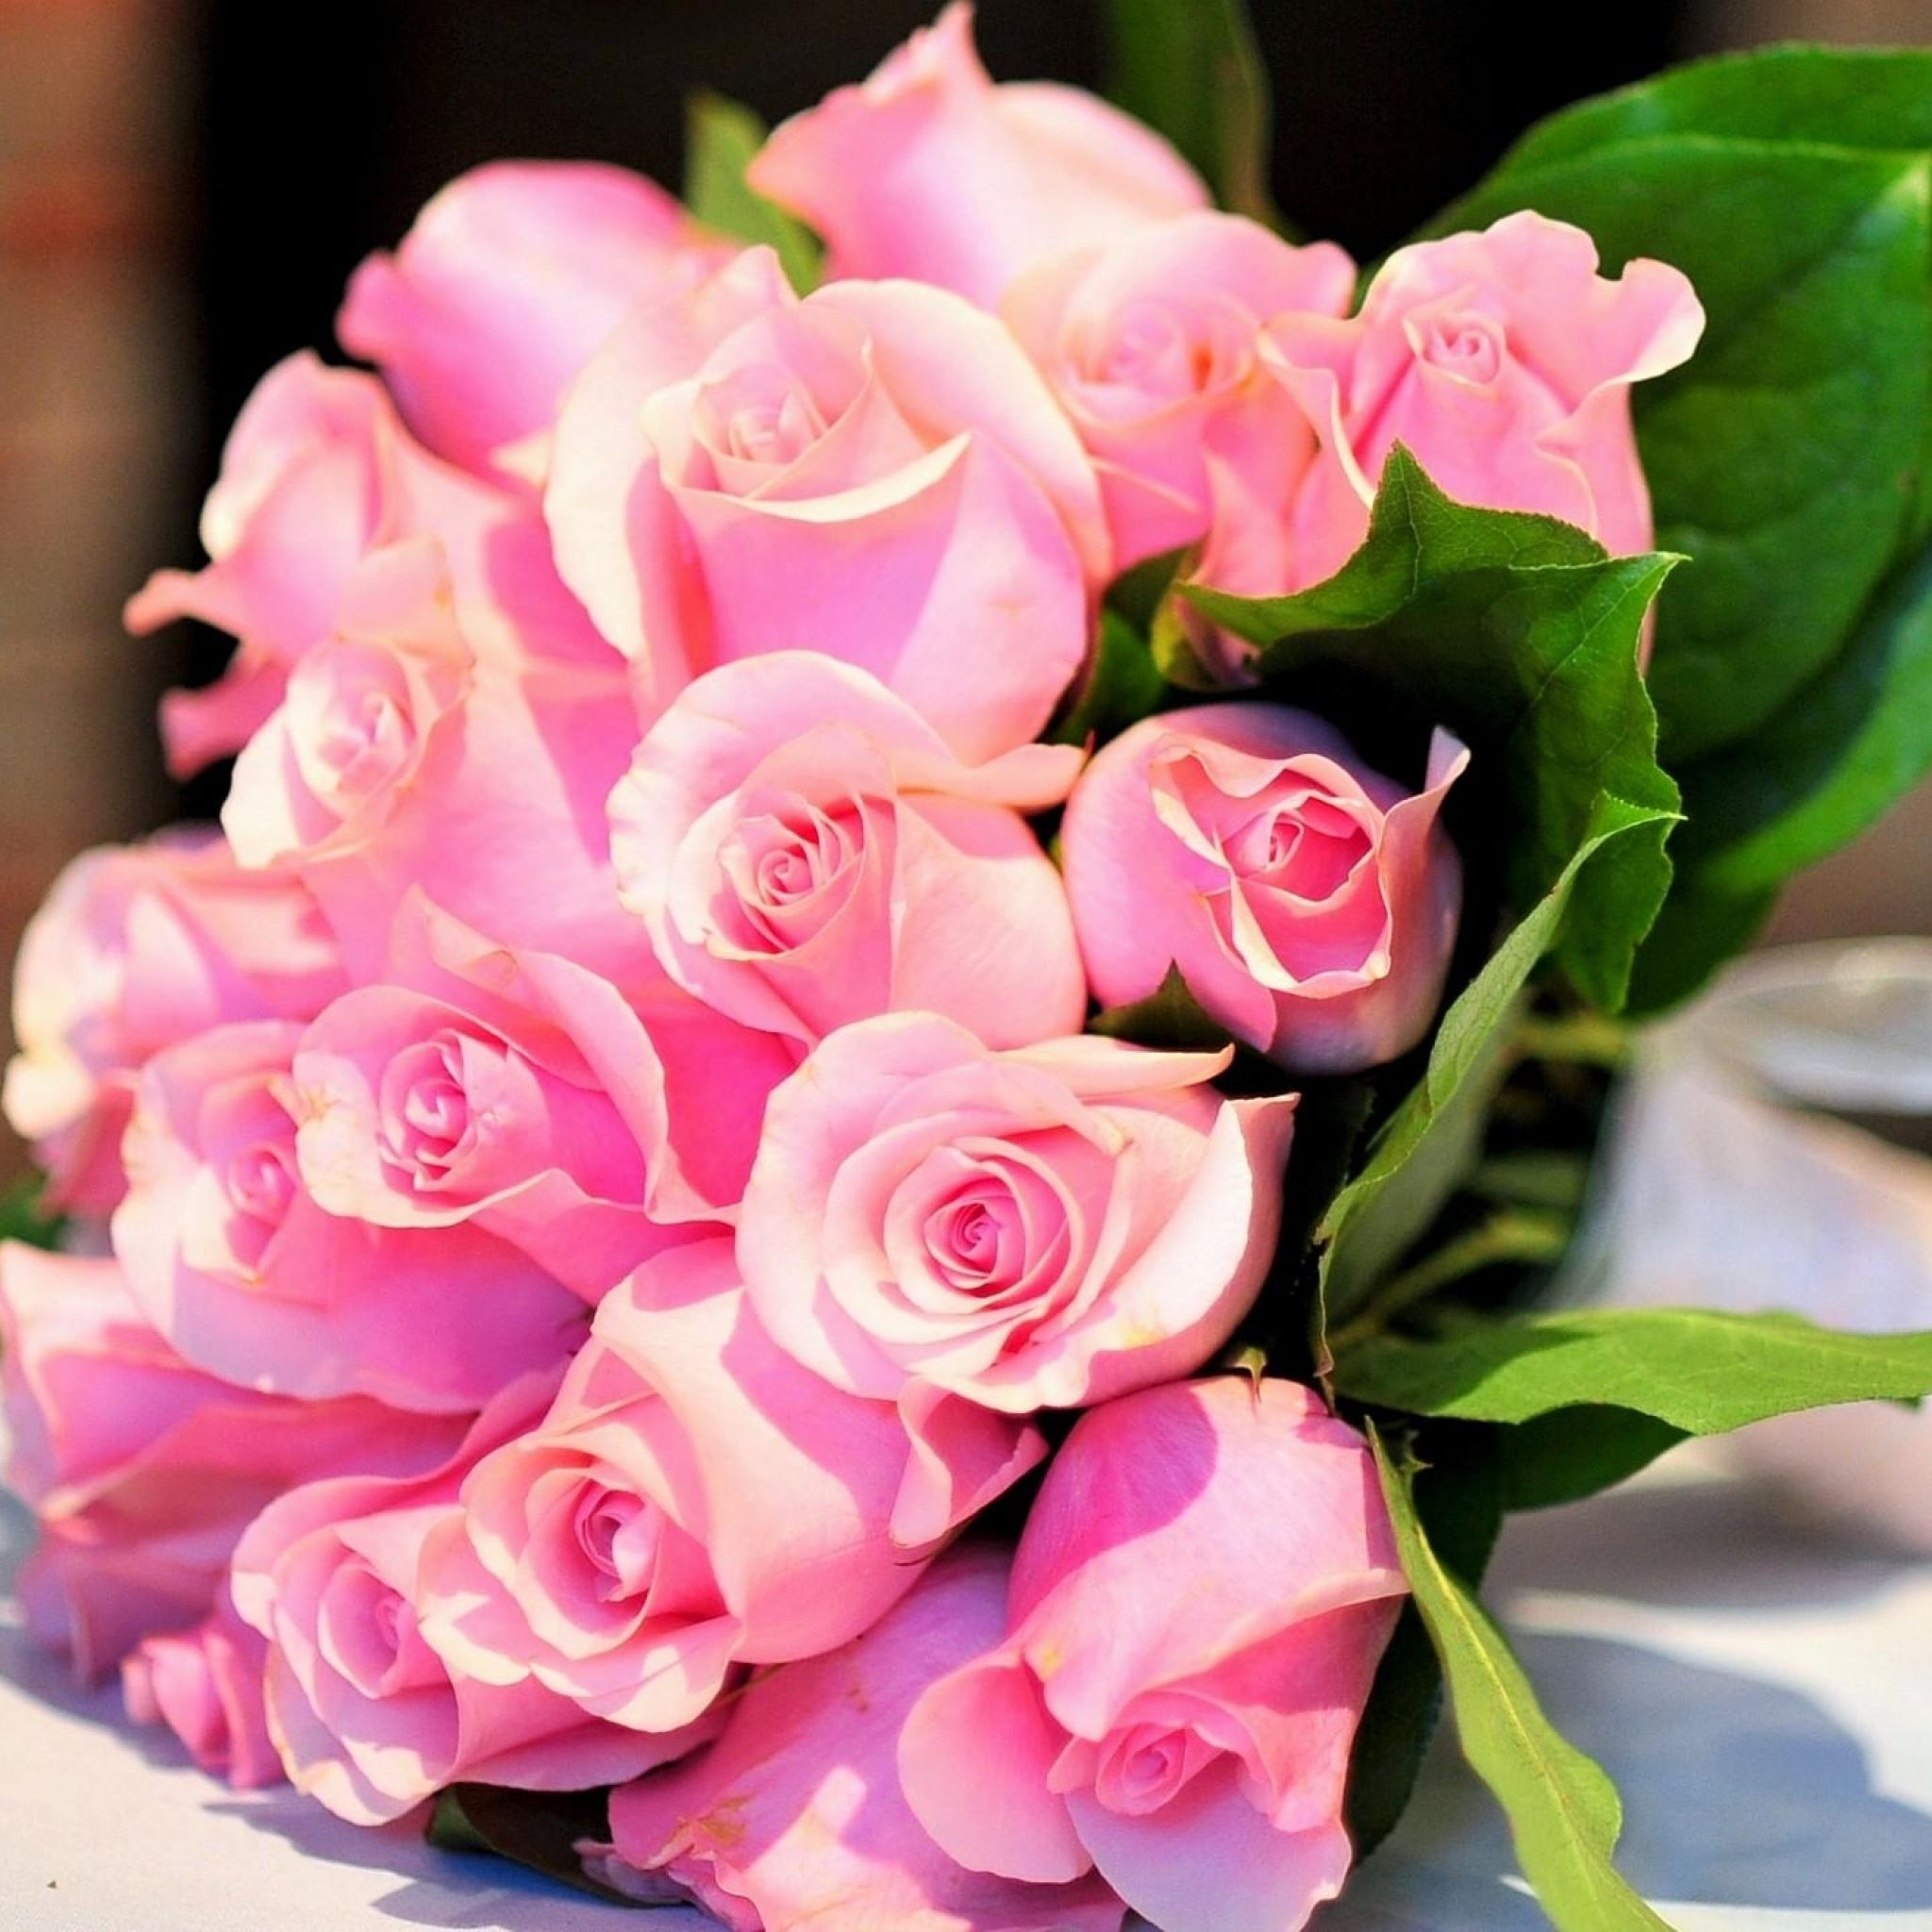 Happy Rose Day Most Beautiful Pink Flowers Hd Wallpapers